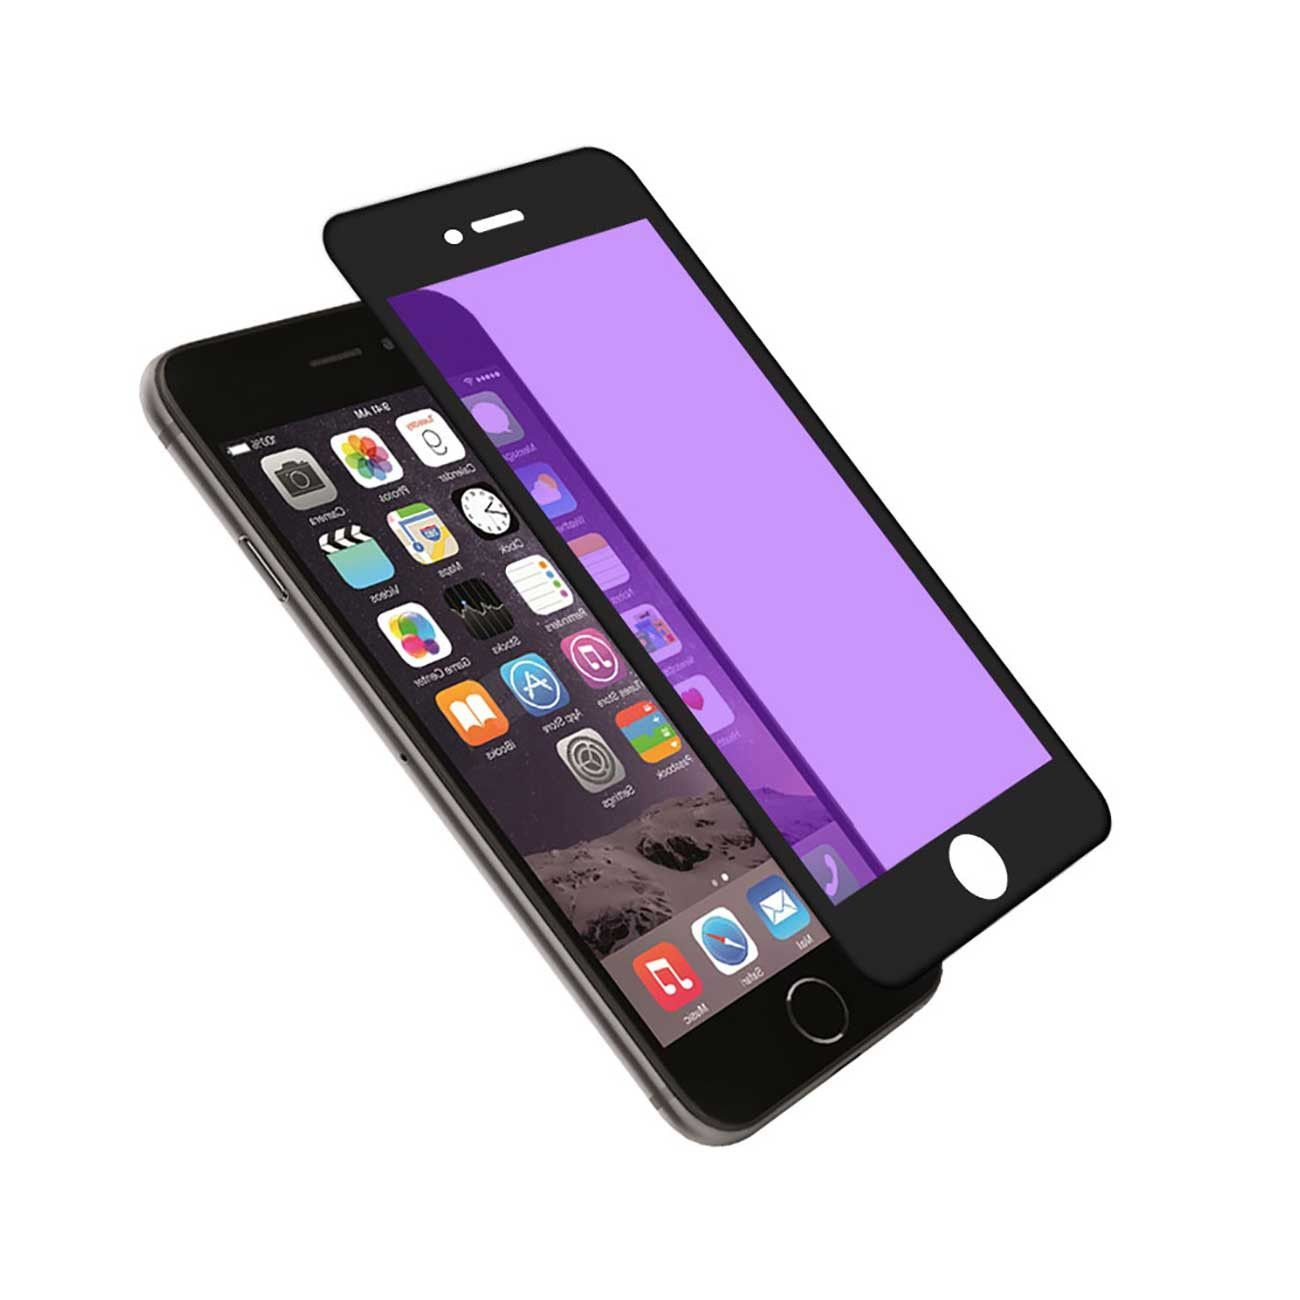 REIKO IPHONE 6 3D ANTI BLUE LIGHT FILTER TEMPERED GLASS SCREEN PROTECTOR IN BLACK